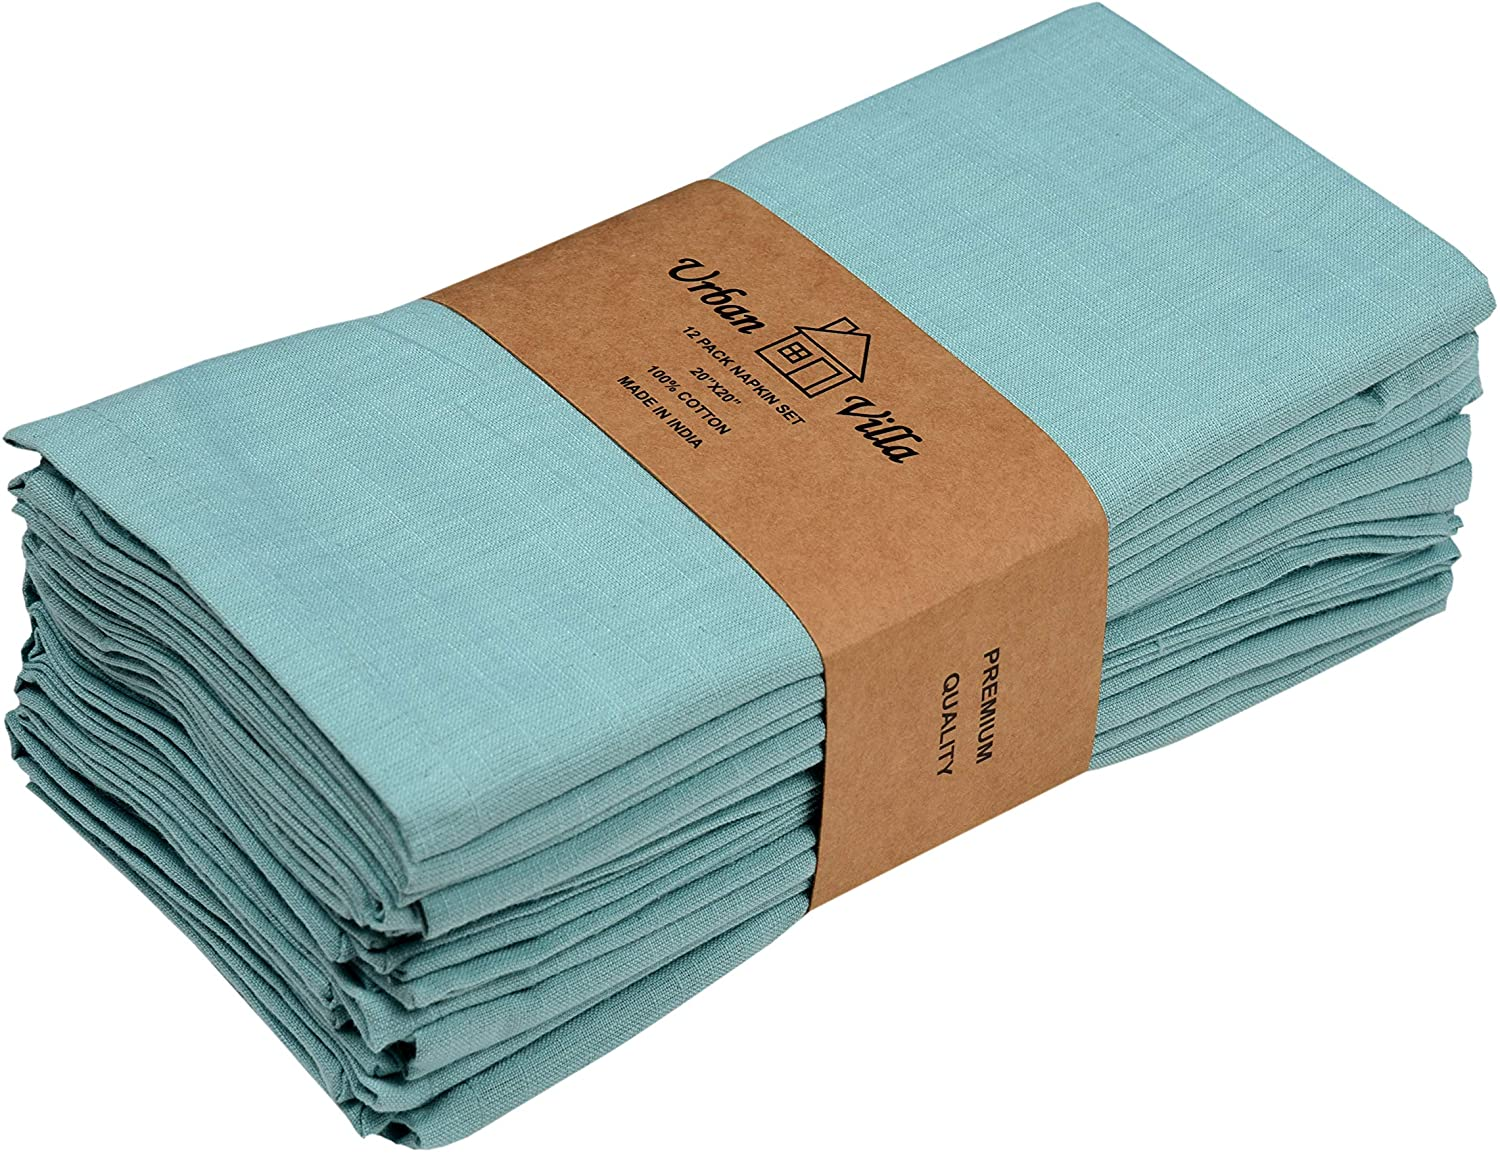 Urban Villa Solid Slub Aqua Color Dinner Napkins Everyday Use Premium Quality 100% Cotton Set of 12 Size 20X20 Inch Over sized Cloth Napkins with Mitered Corners Ultra Soft Durable Hotel Quality: Kitchen & Dining